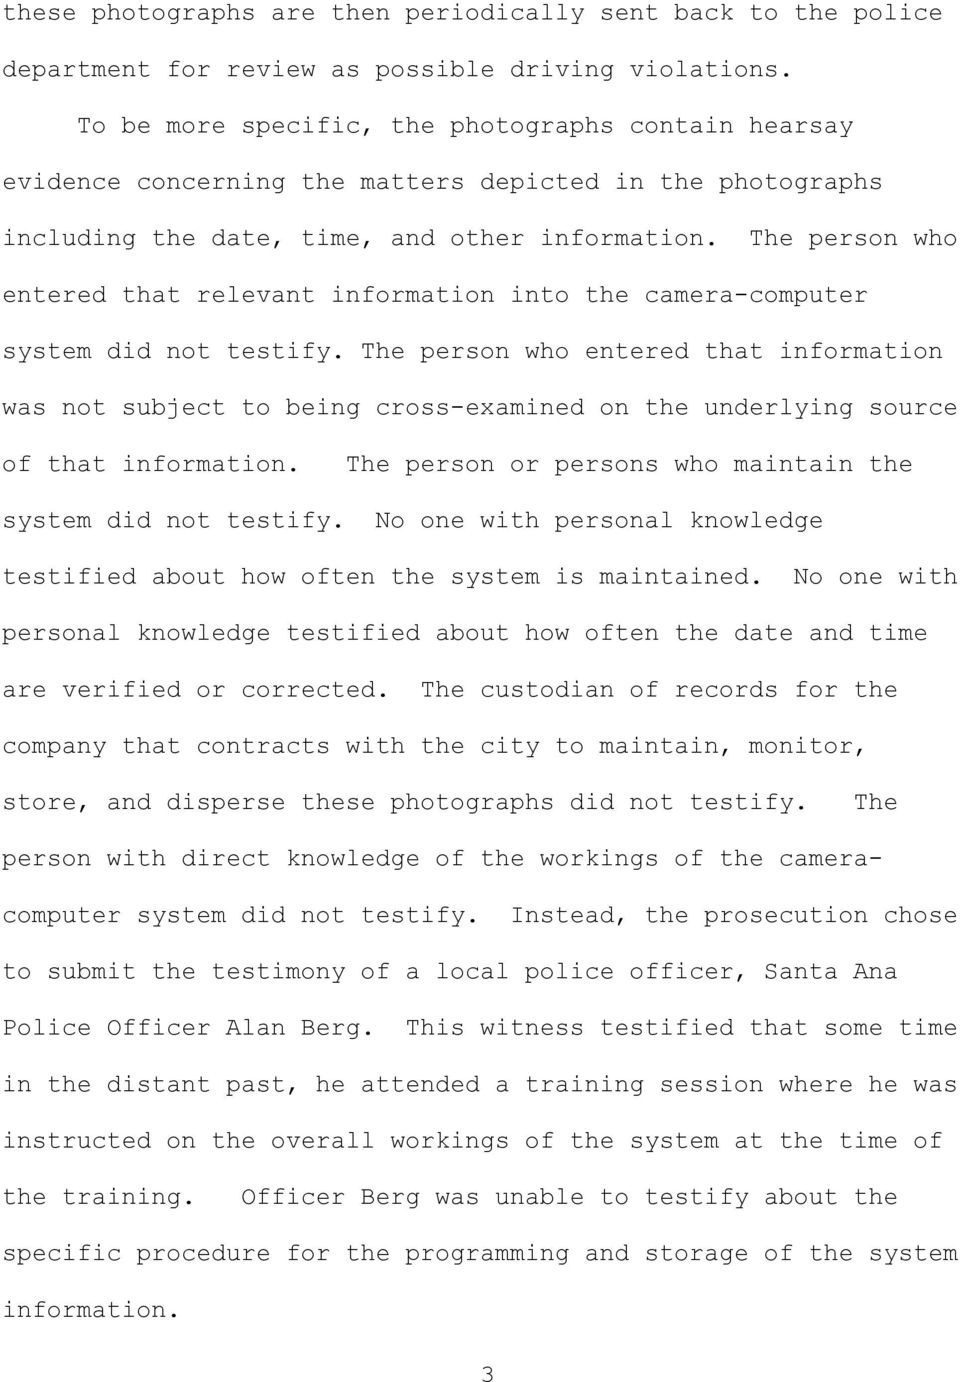 The person who entered that relevant information into the camera-computer system did not testify.